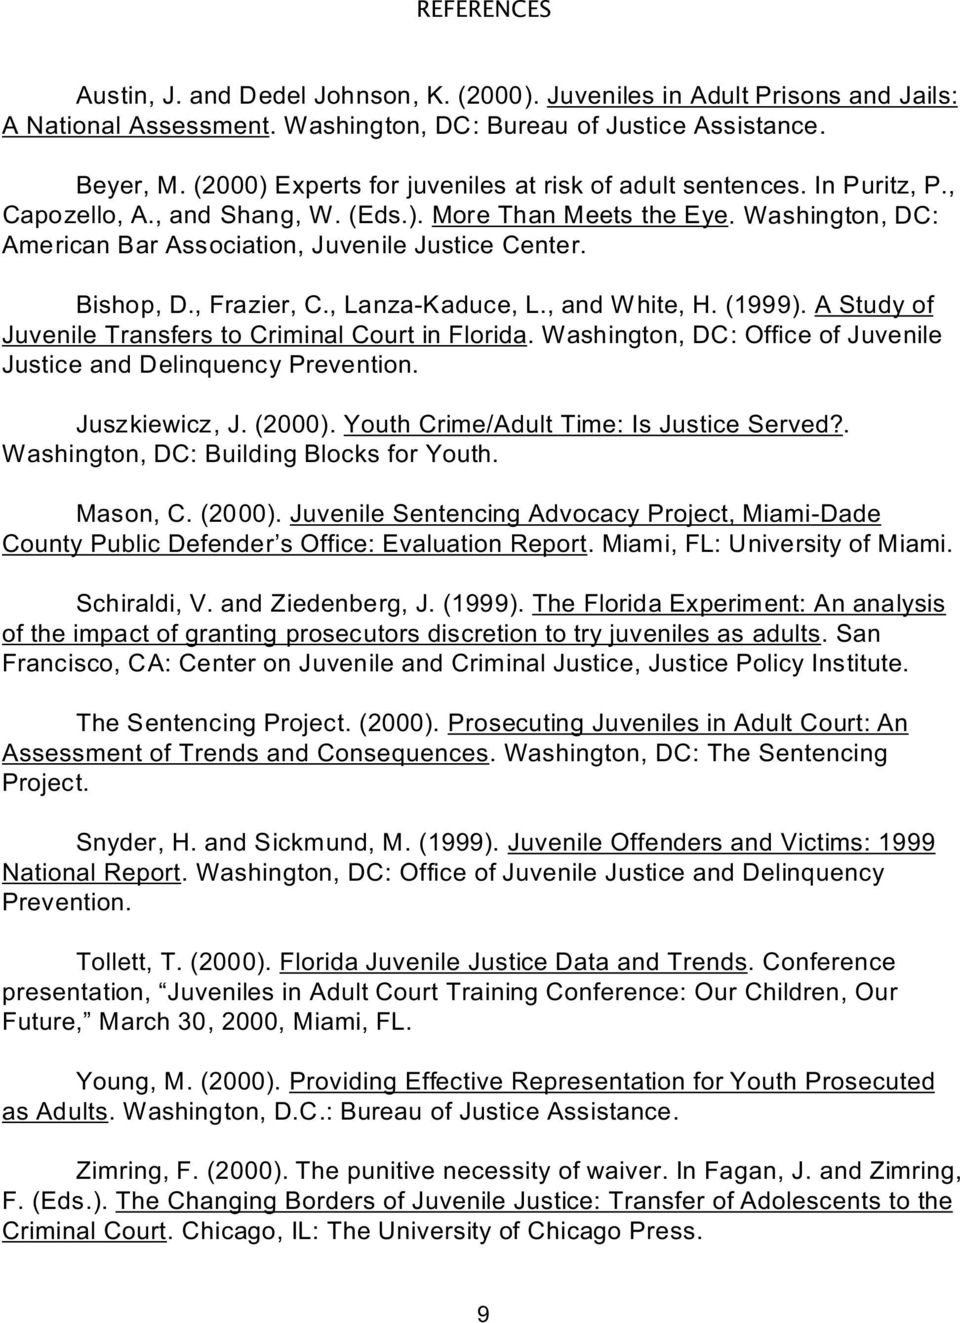 Bishop, D., Frazier, C., Lanza-Kaduce, L., and White, H. (1999). A Study of Juvenile Transfers to Criminal Court in Florida. Washington, DC: Office of Juvenile Justice and Delinquency Prevention.